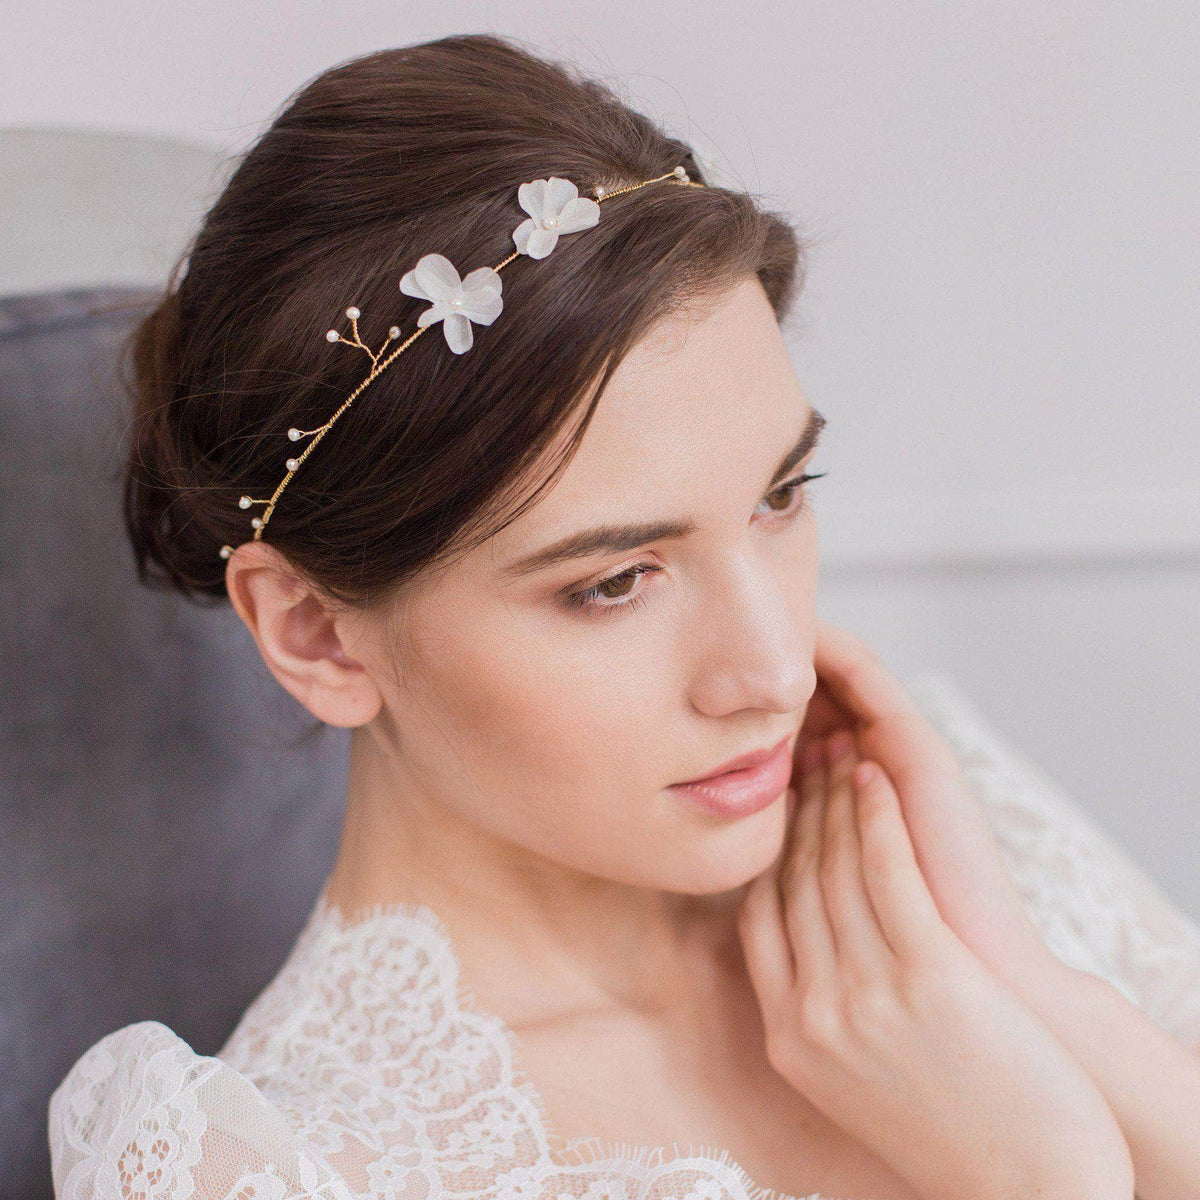 Wedding Hairvine Gold wedding hair vine with pearls and silk flowers - 'Hareré'